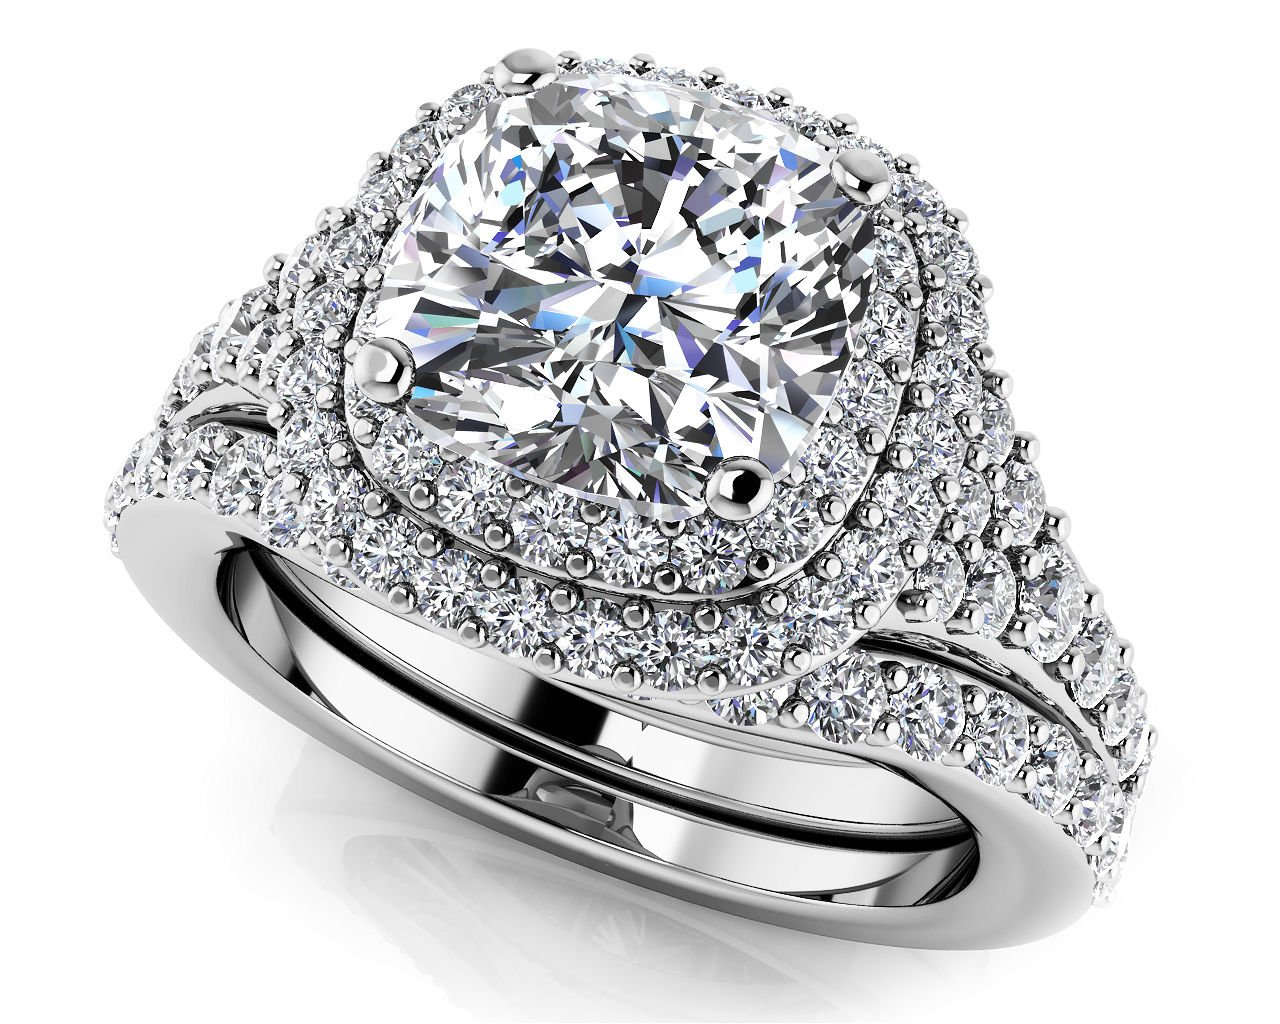 2.10 Tcw Cushion Cut CZ Solitaire Double Halo Bridal Ring Sets 14k White Gold